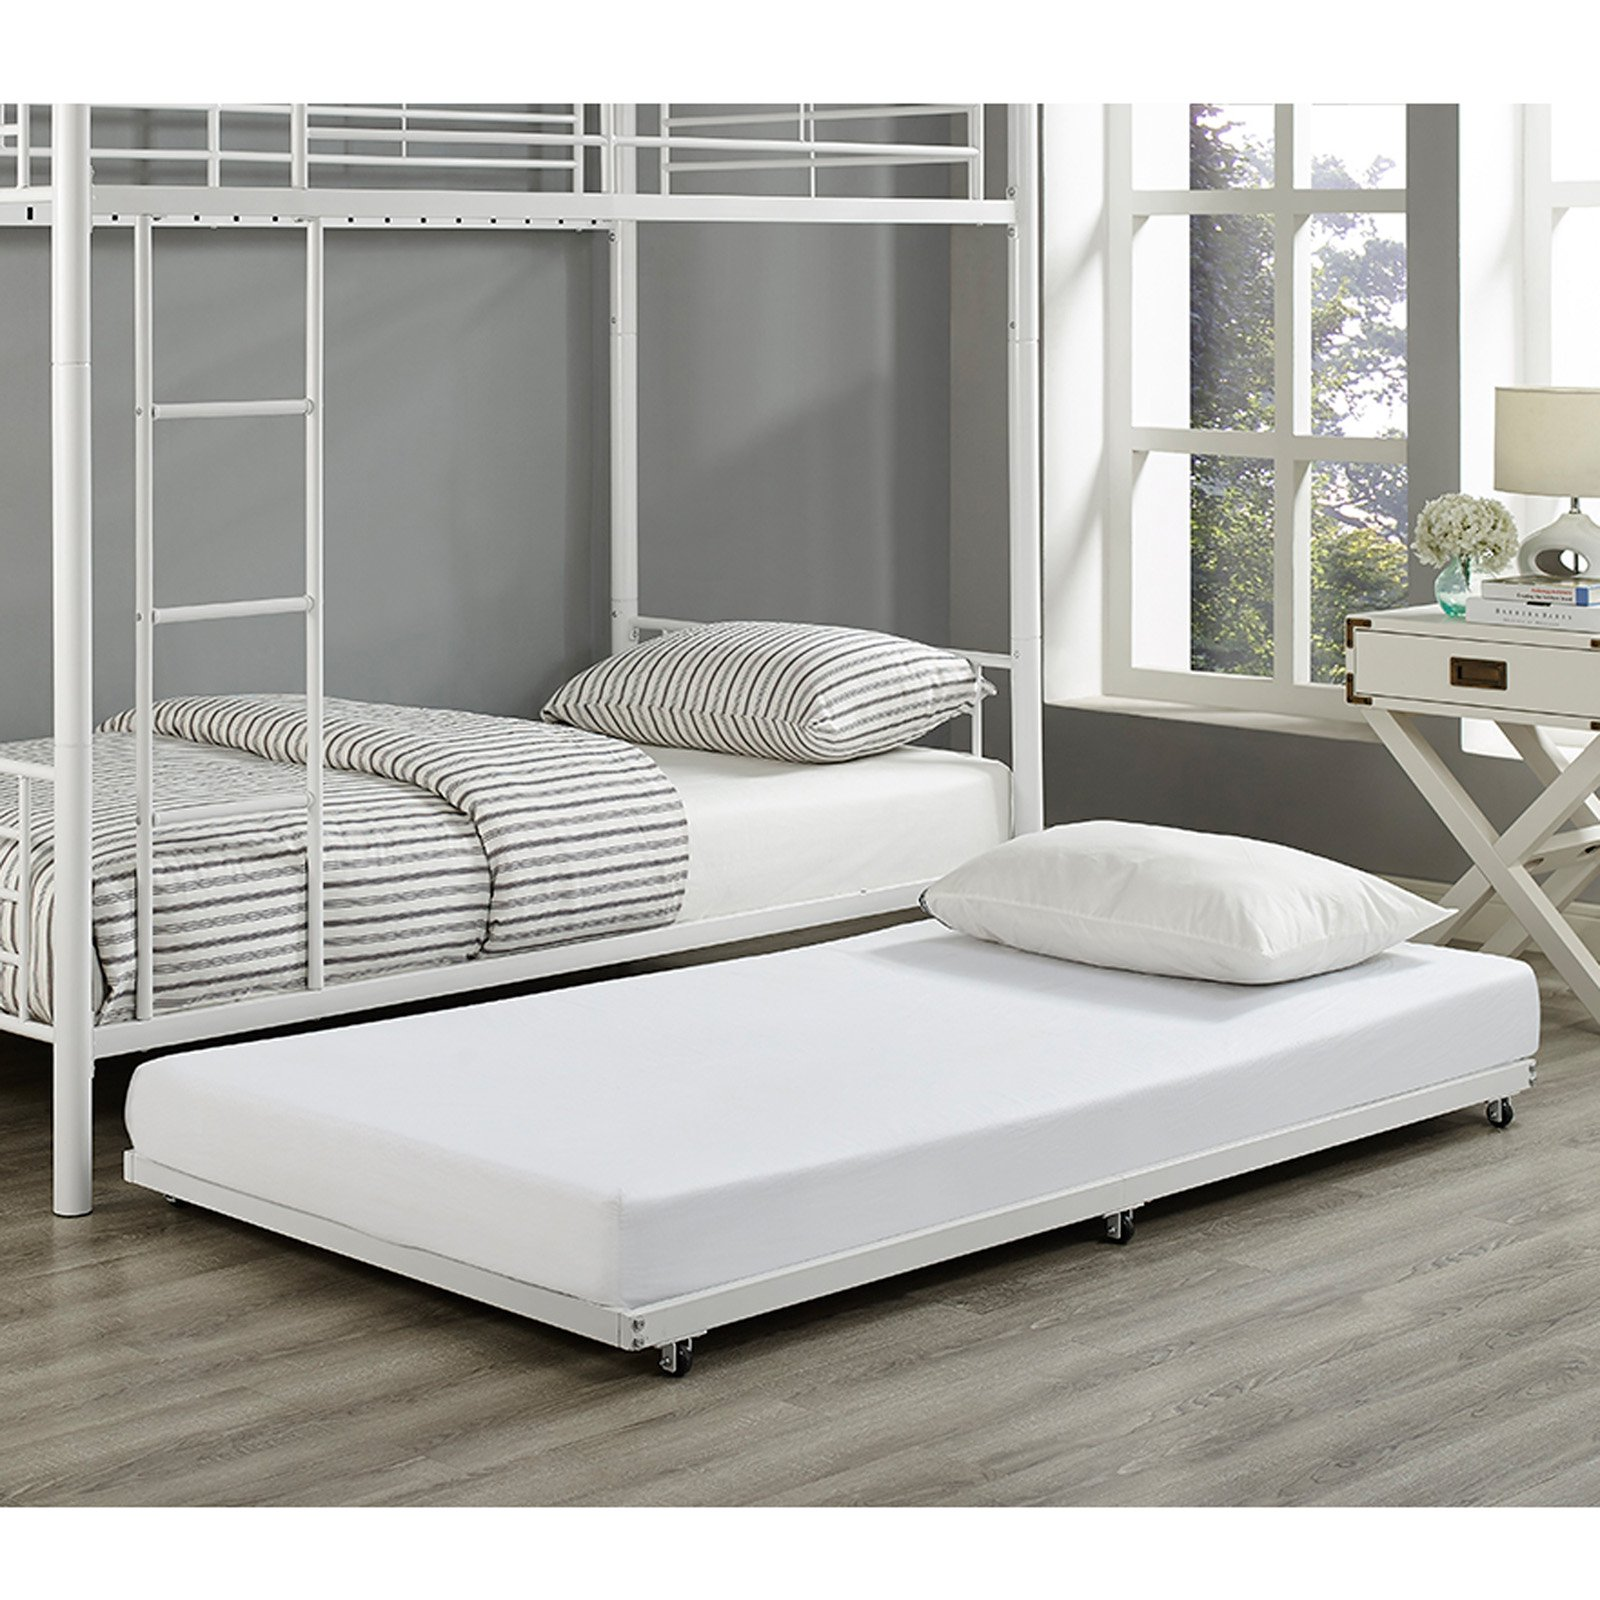 White Twin Roll-Out Trundle Bed Frame